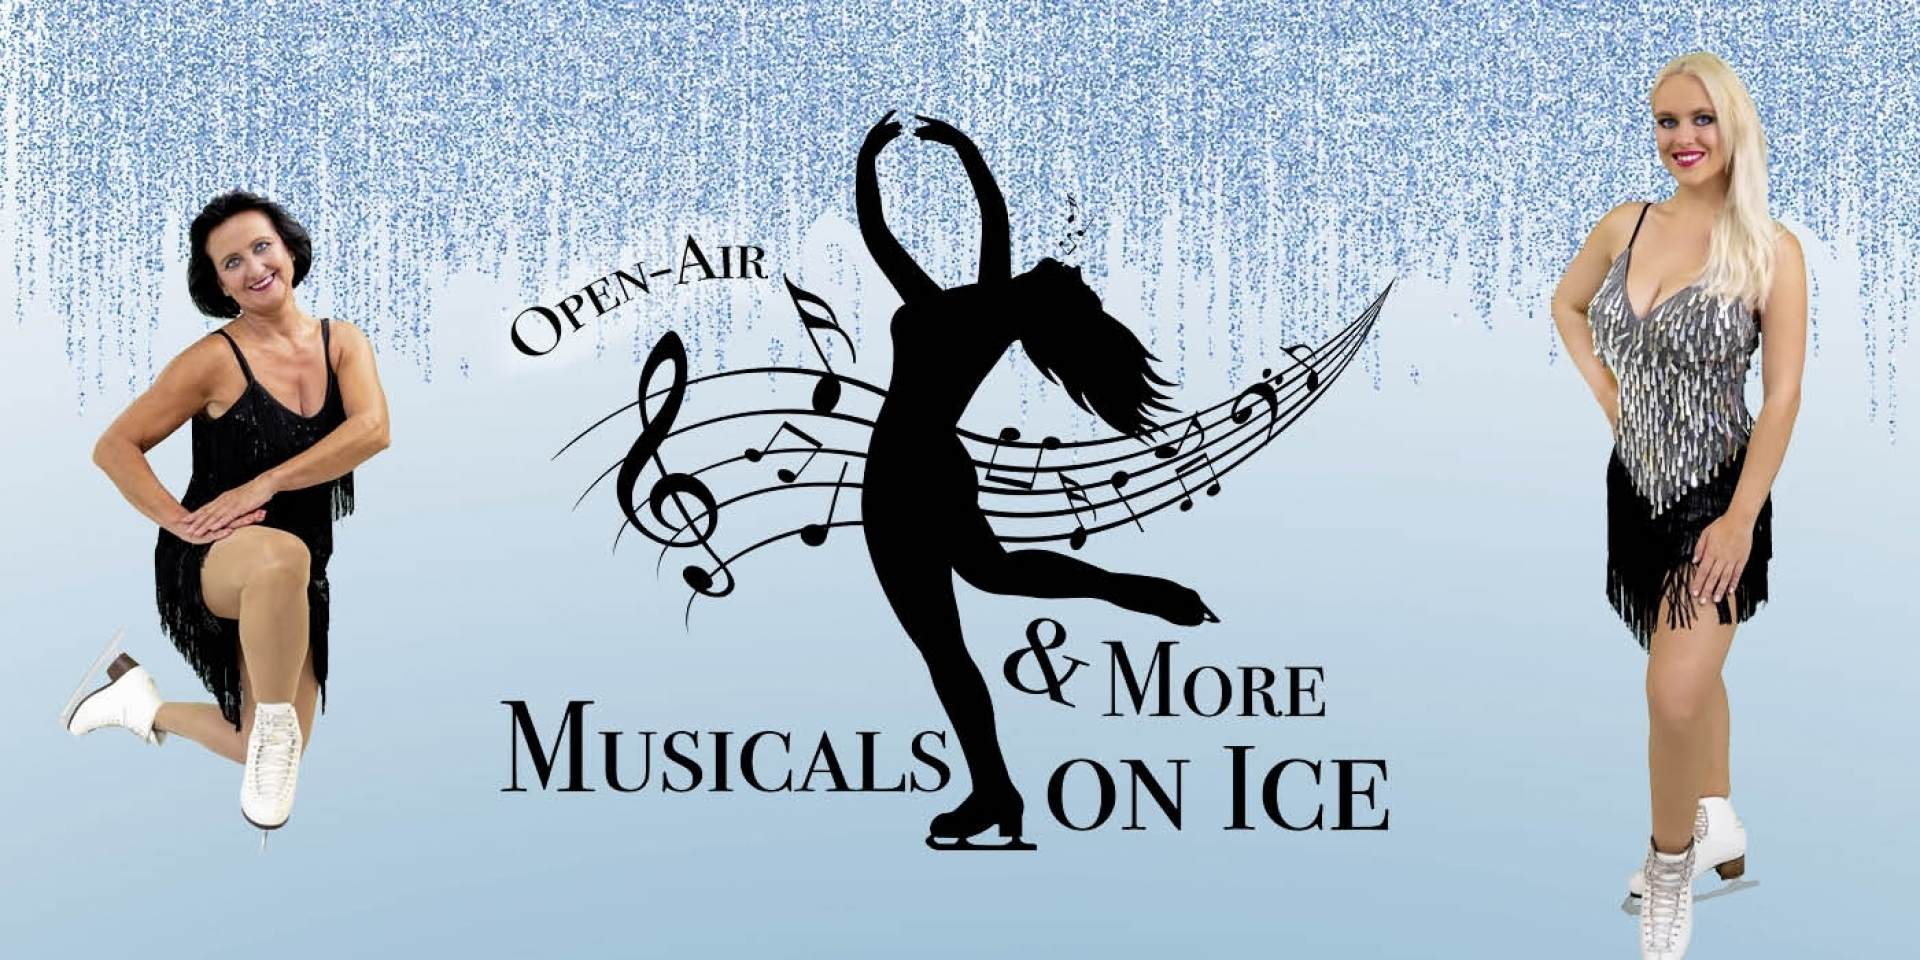 Musicals and More on Ice